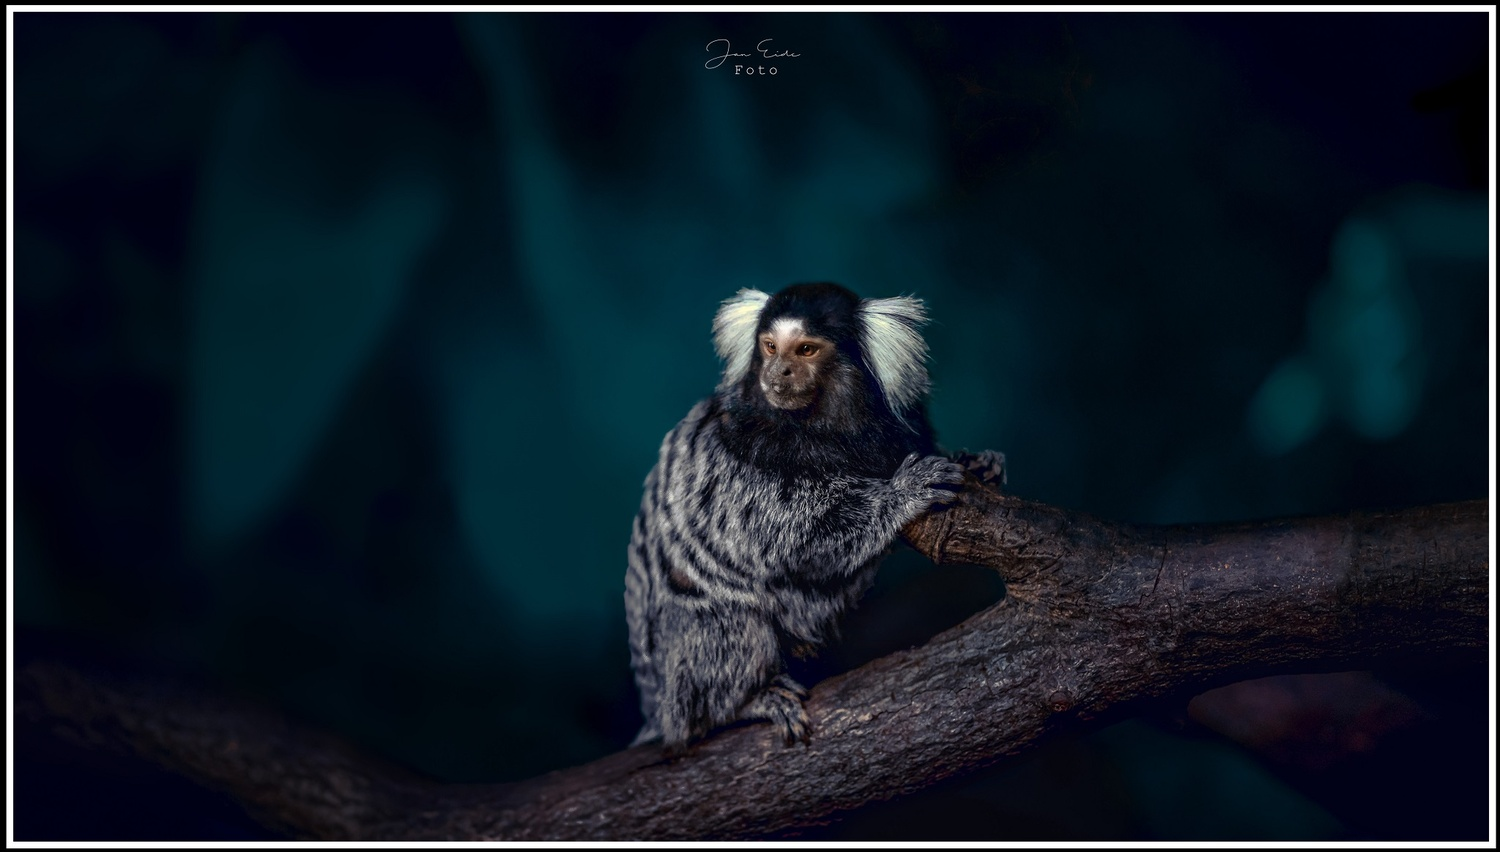 Little Marmoset by Jan Eide